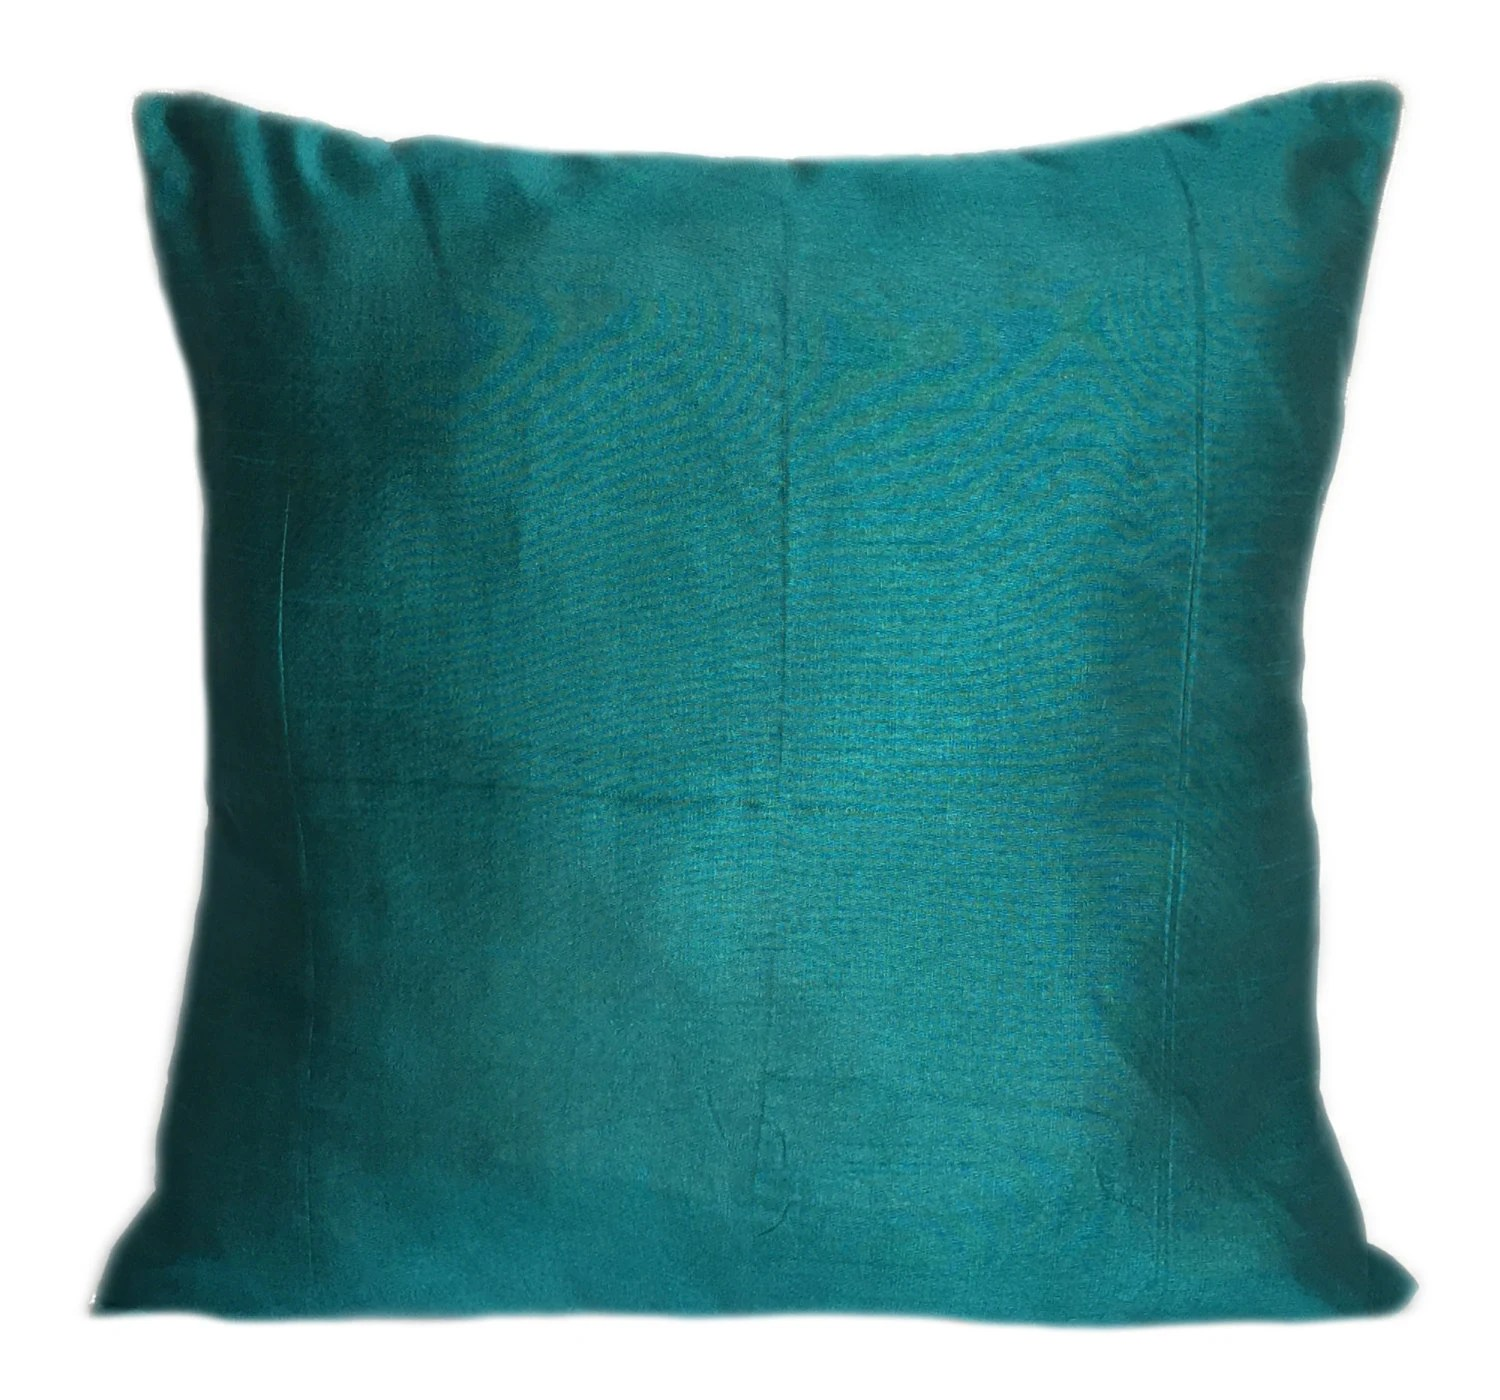 Teal pillow cover  Etsy